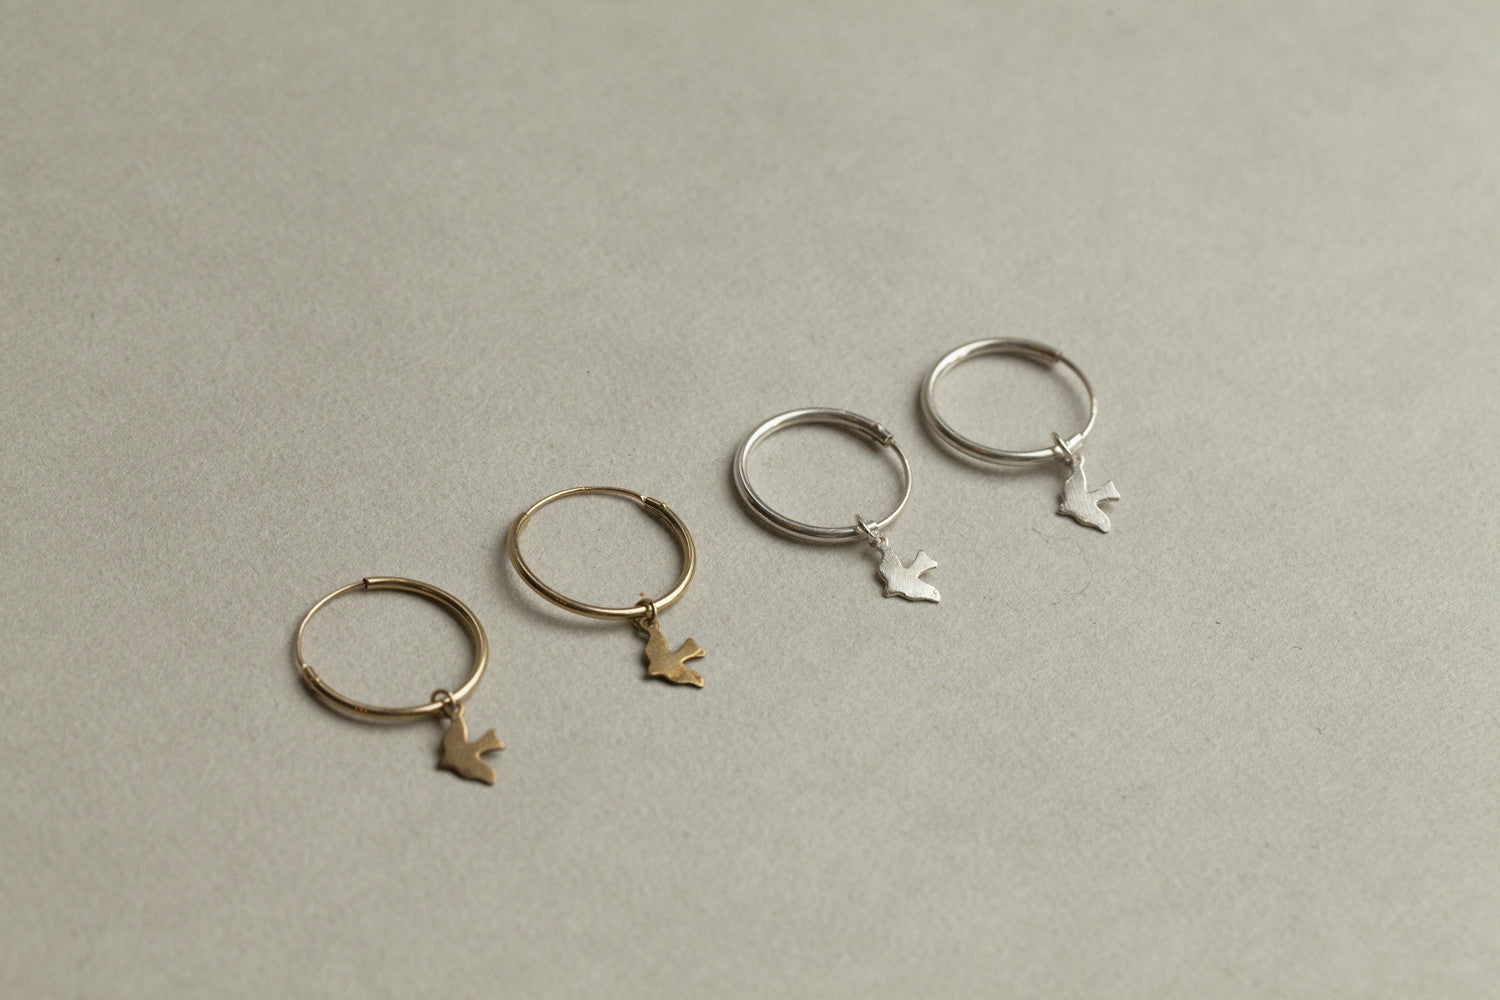 Alice Eden gold plated silver dickie bird hoop earrings, available at feltlondon.com